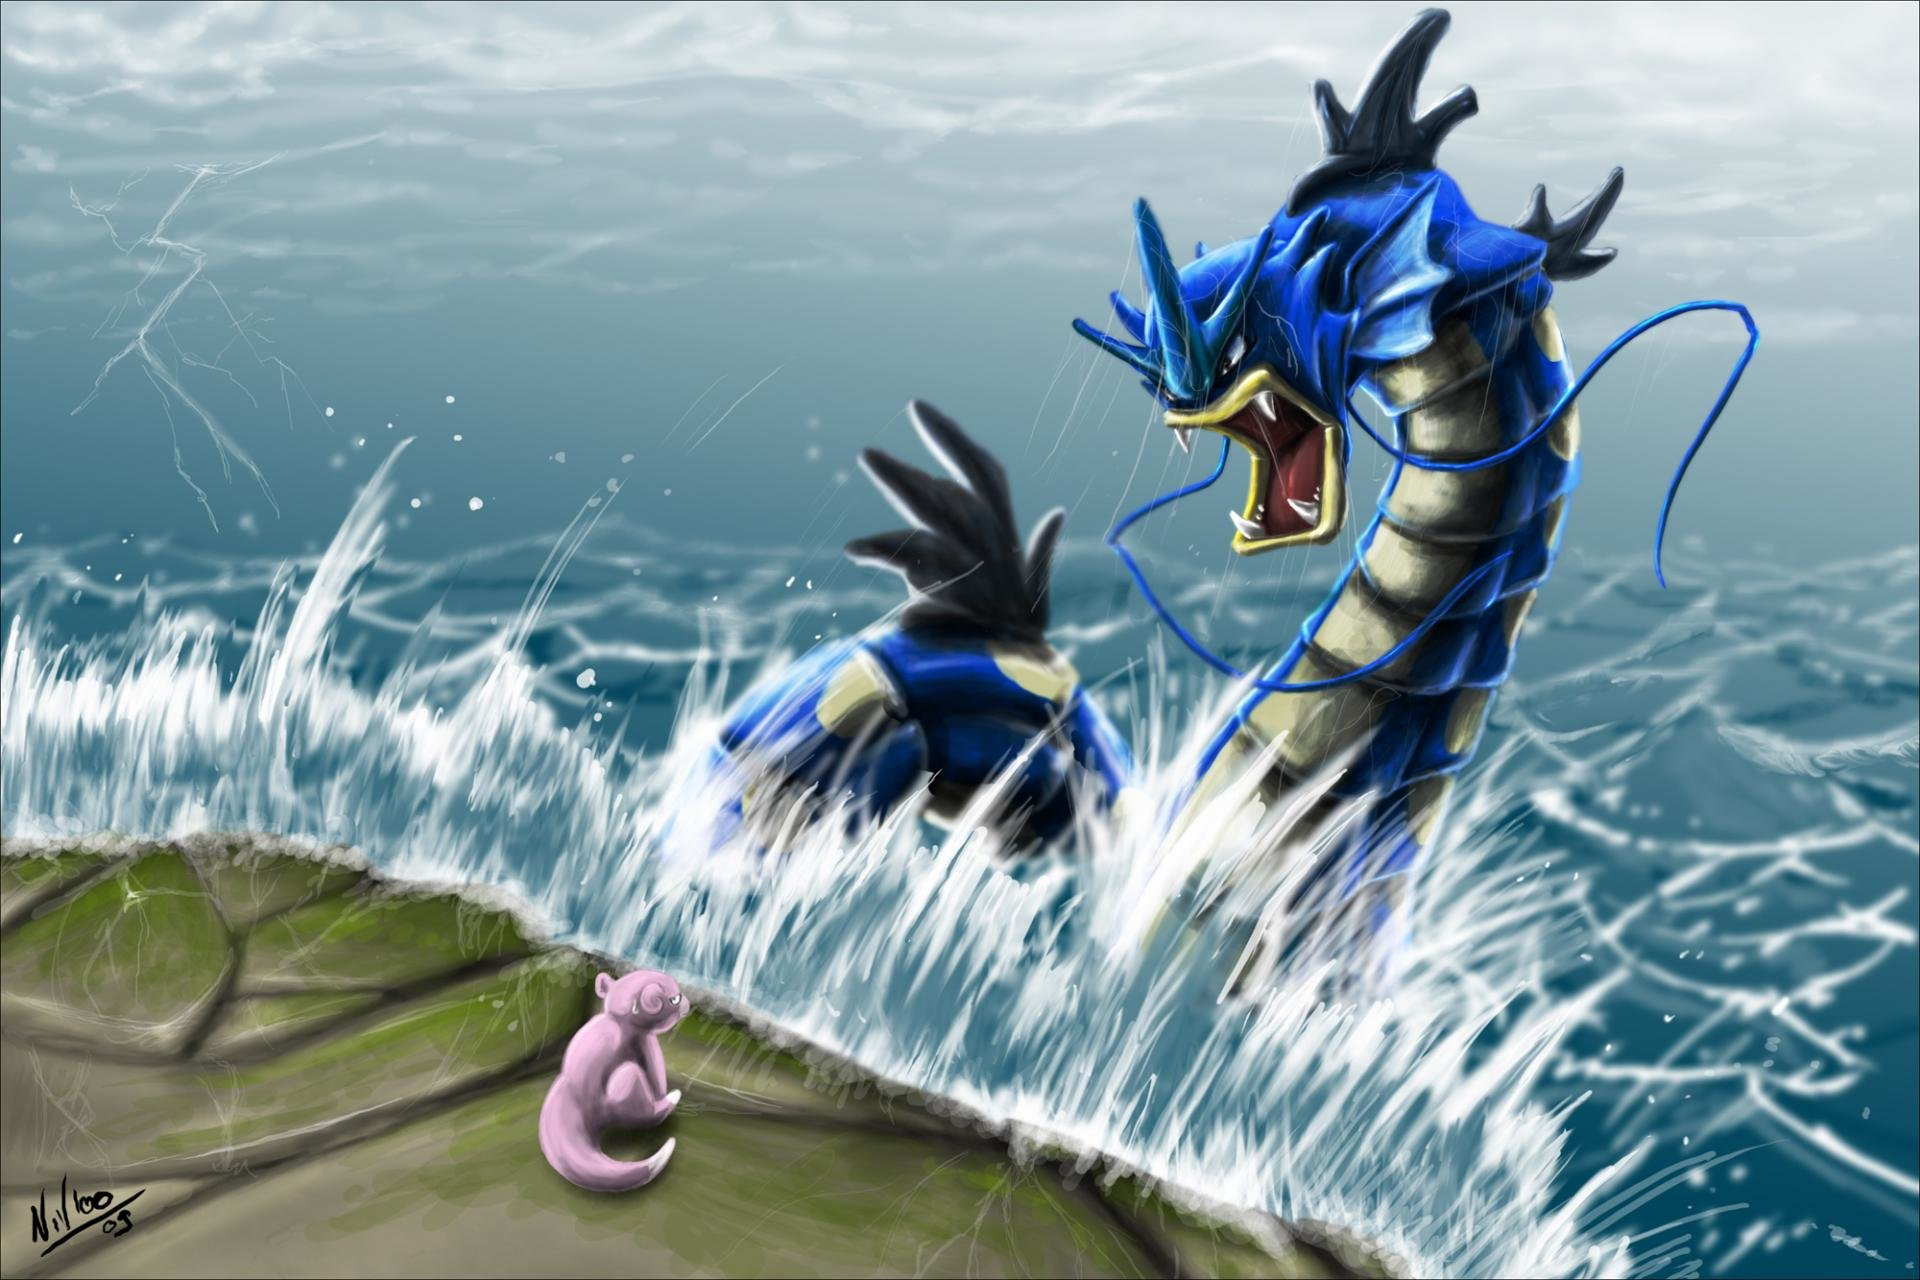 Download hd 1920x1280 Gyarados (Pokemon) PC background ID:280174 for free